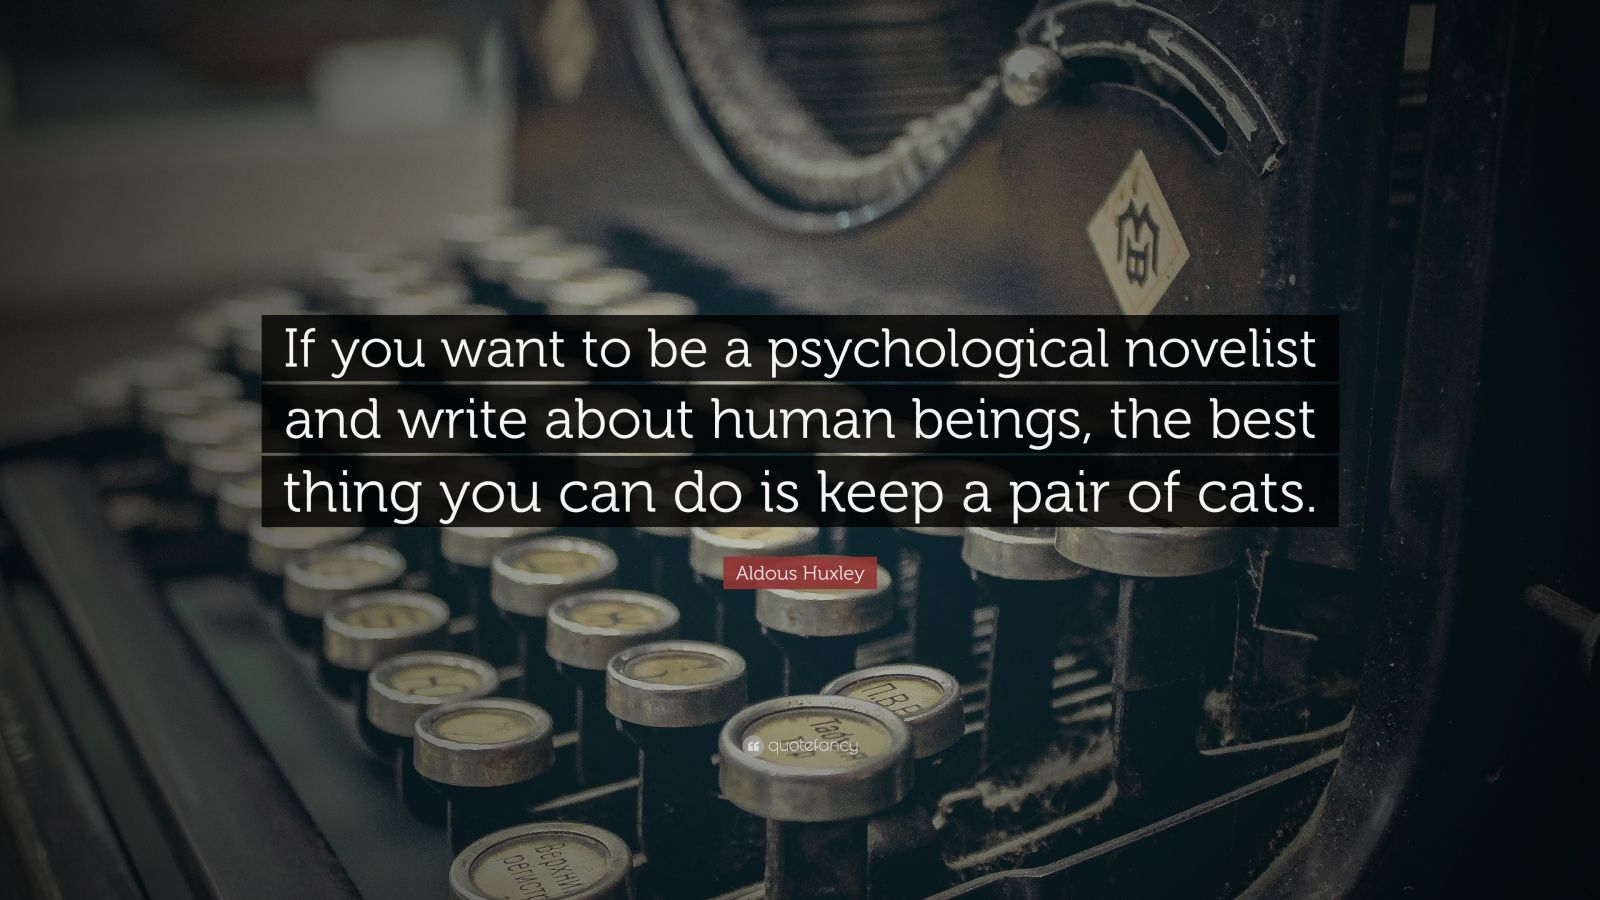 """Aldous Huxley Quote: """"If you want to be a psychological novelist and write about human beings, the best thing you can do is keep a pair of cats."""""""